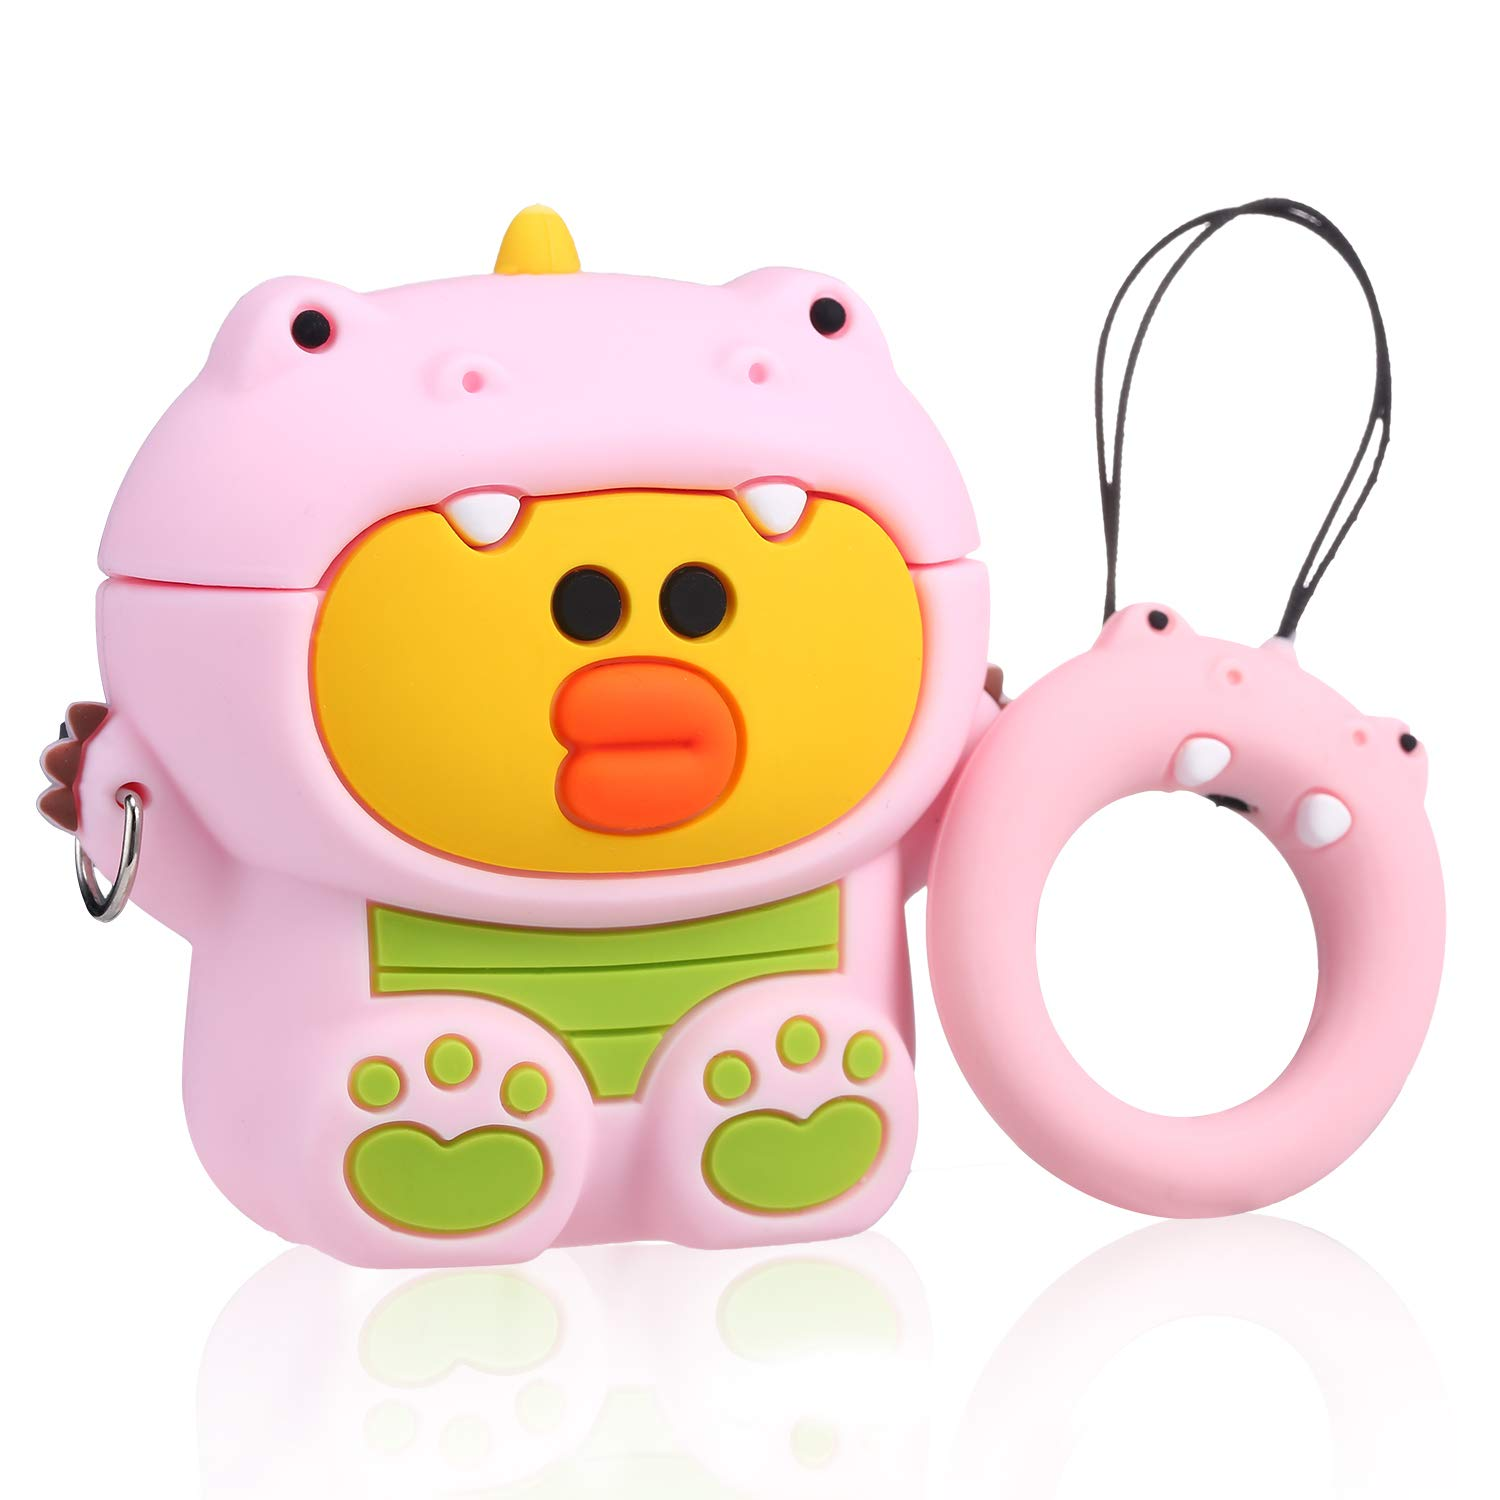 Joyleop Pink Dinosaur Duck Case Compatible with Airpods 1/2, Cute Cartoon Fun Funny 3D Animal Kids Girls Teens Cover, Kawaii Stylish Fashion Soft Silicone Character Airpod Skin Cases for Air pods 1&2